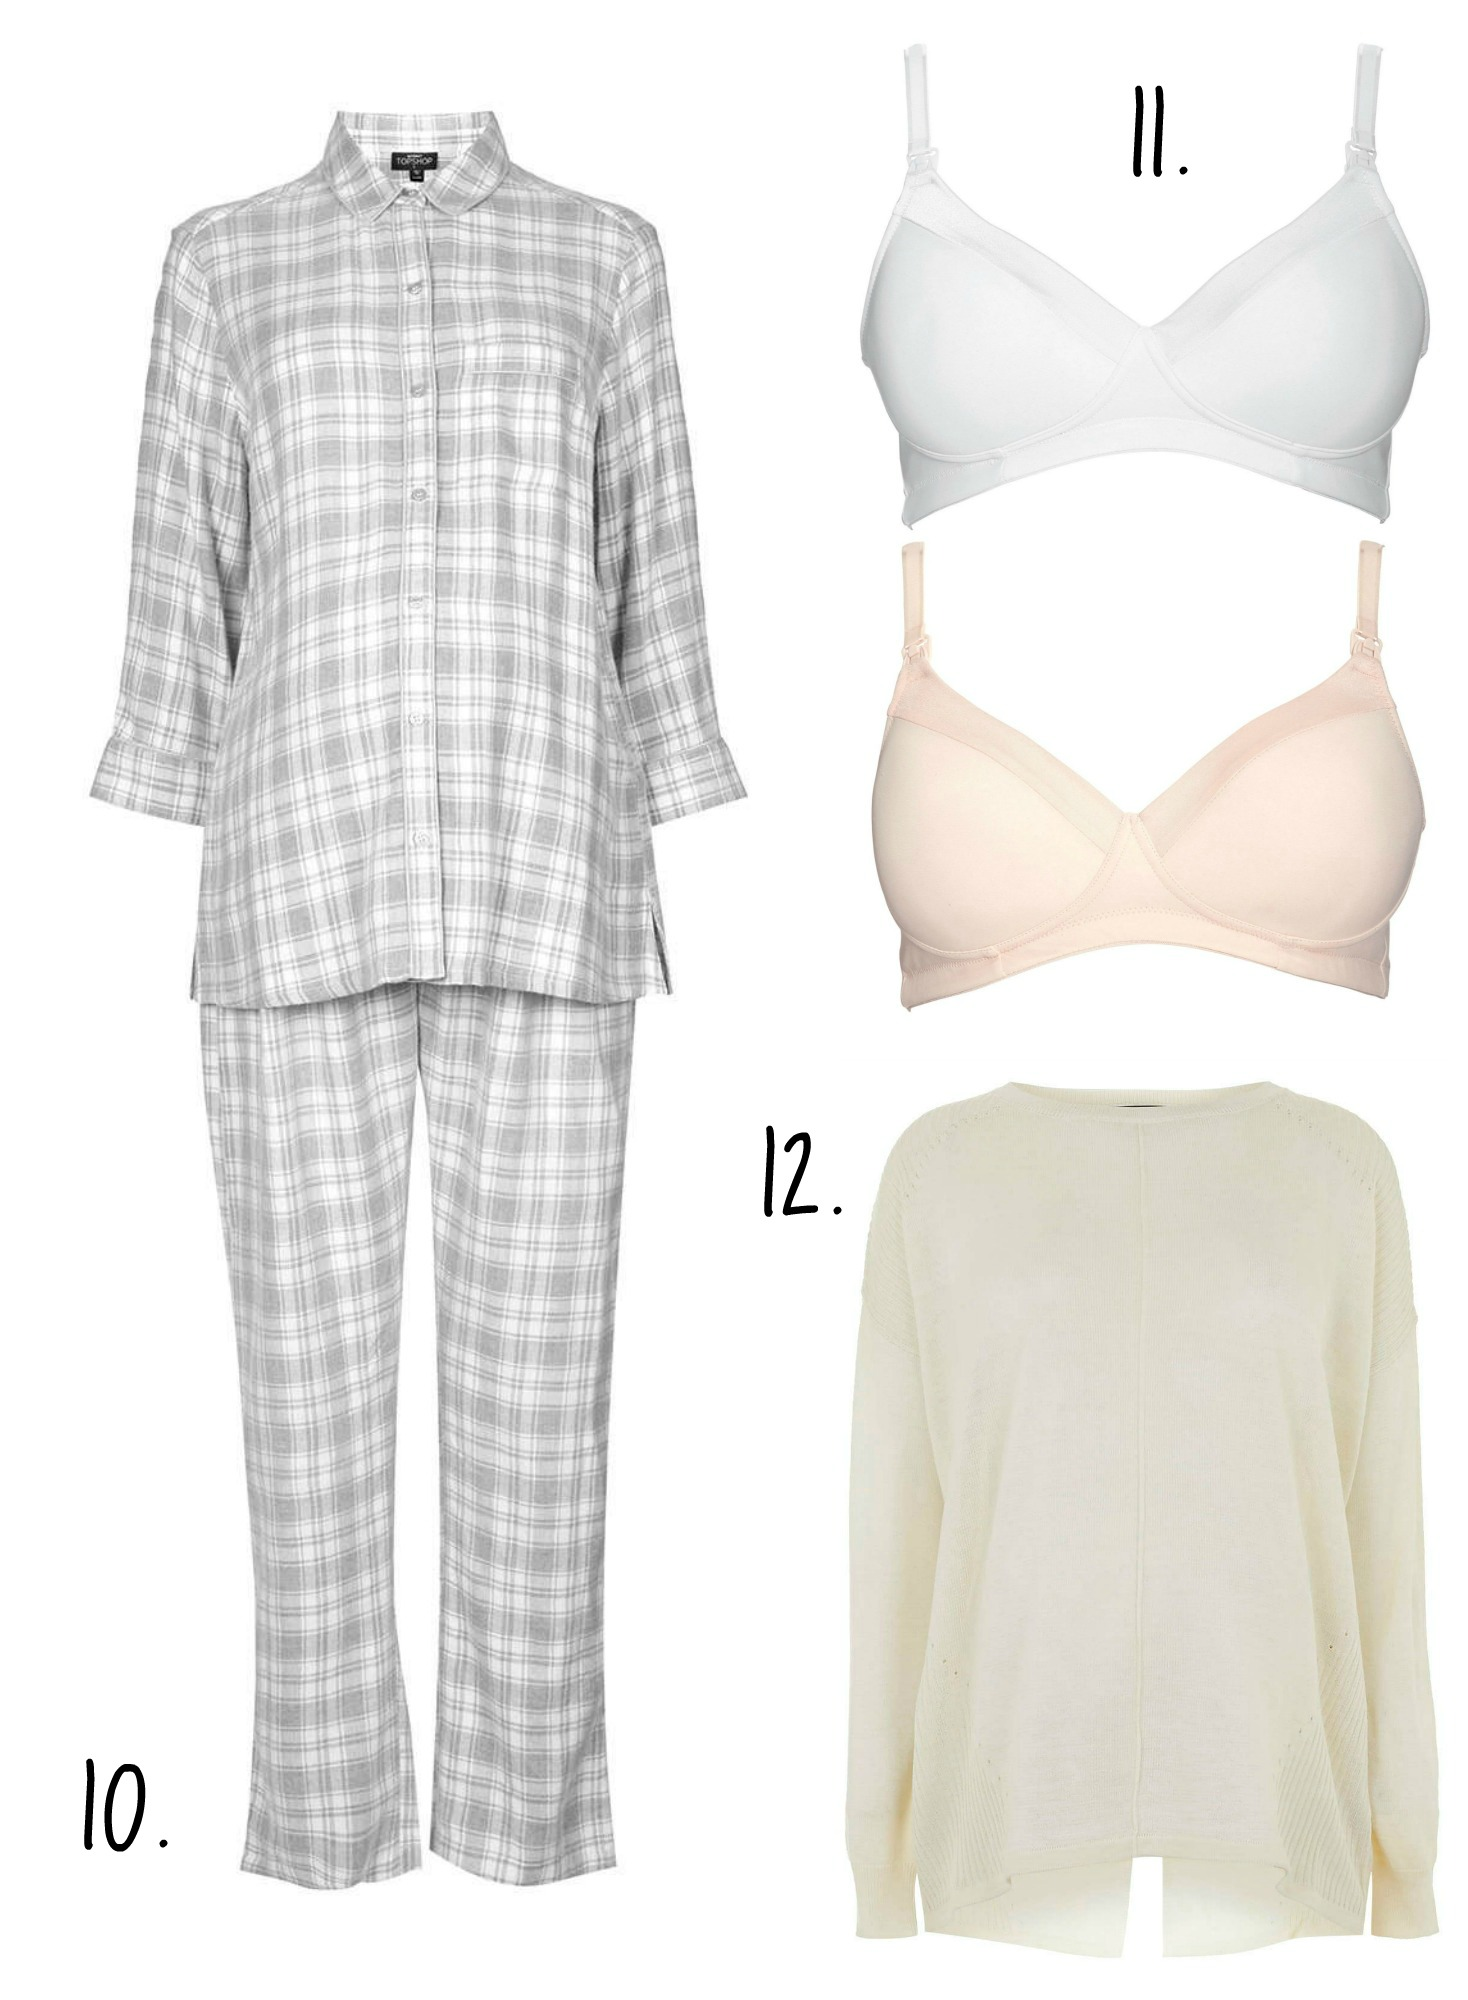 maternity hospital clothes 3